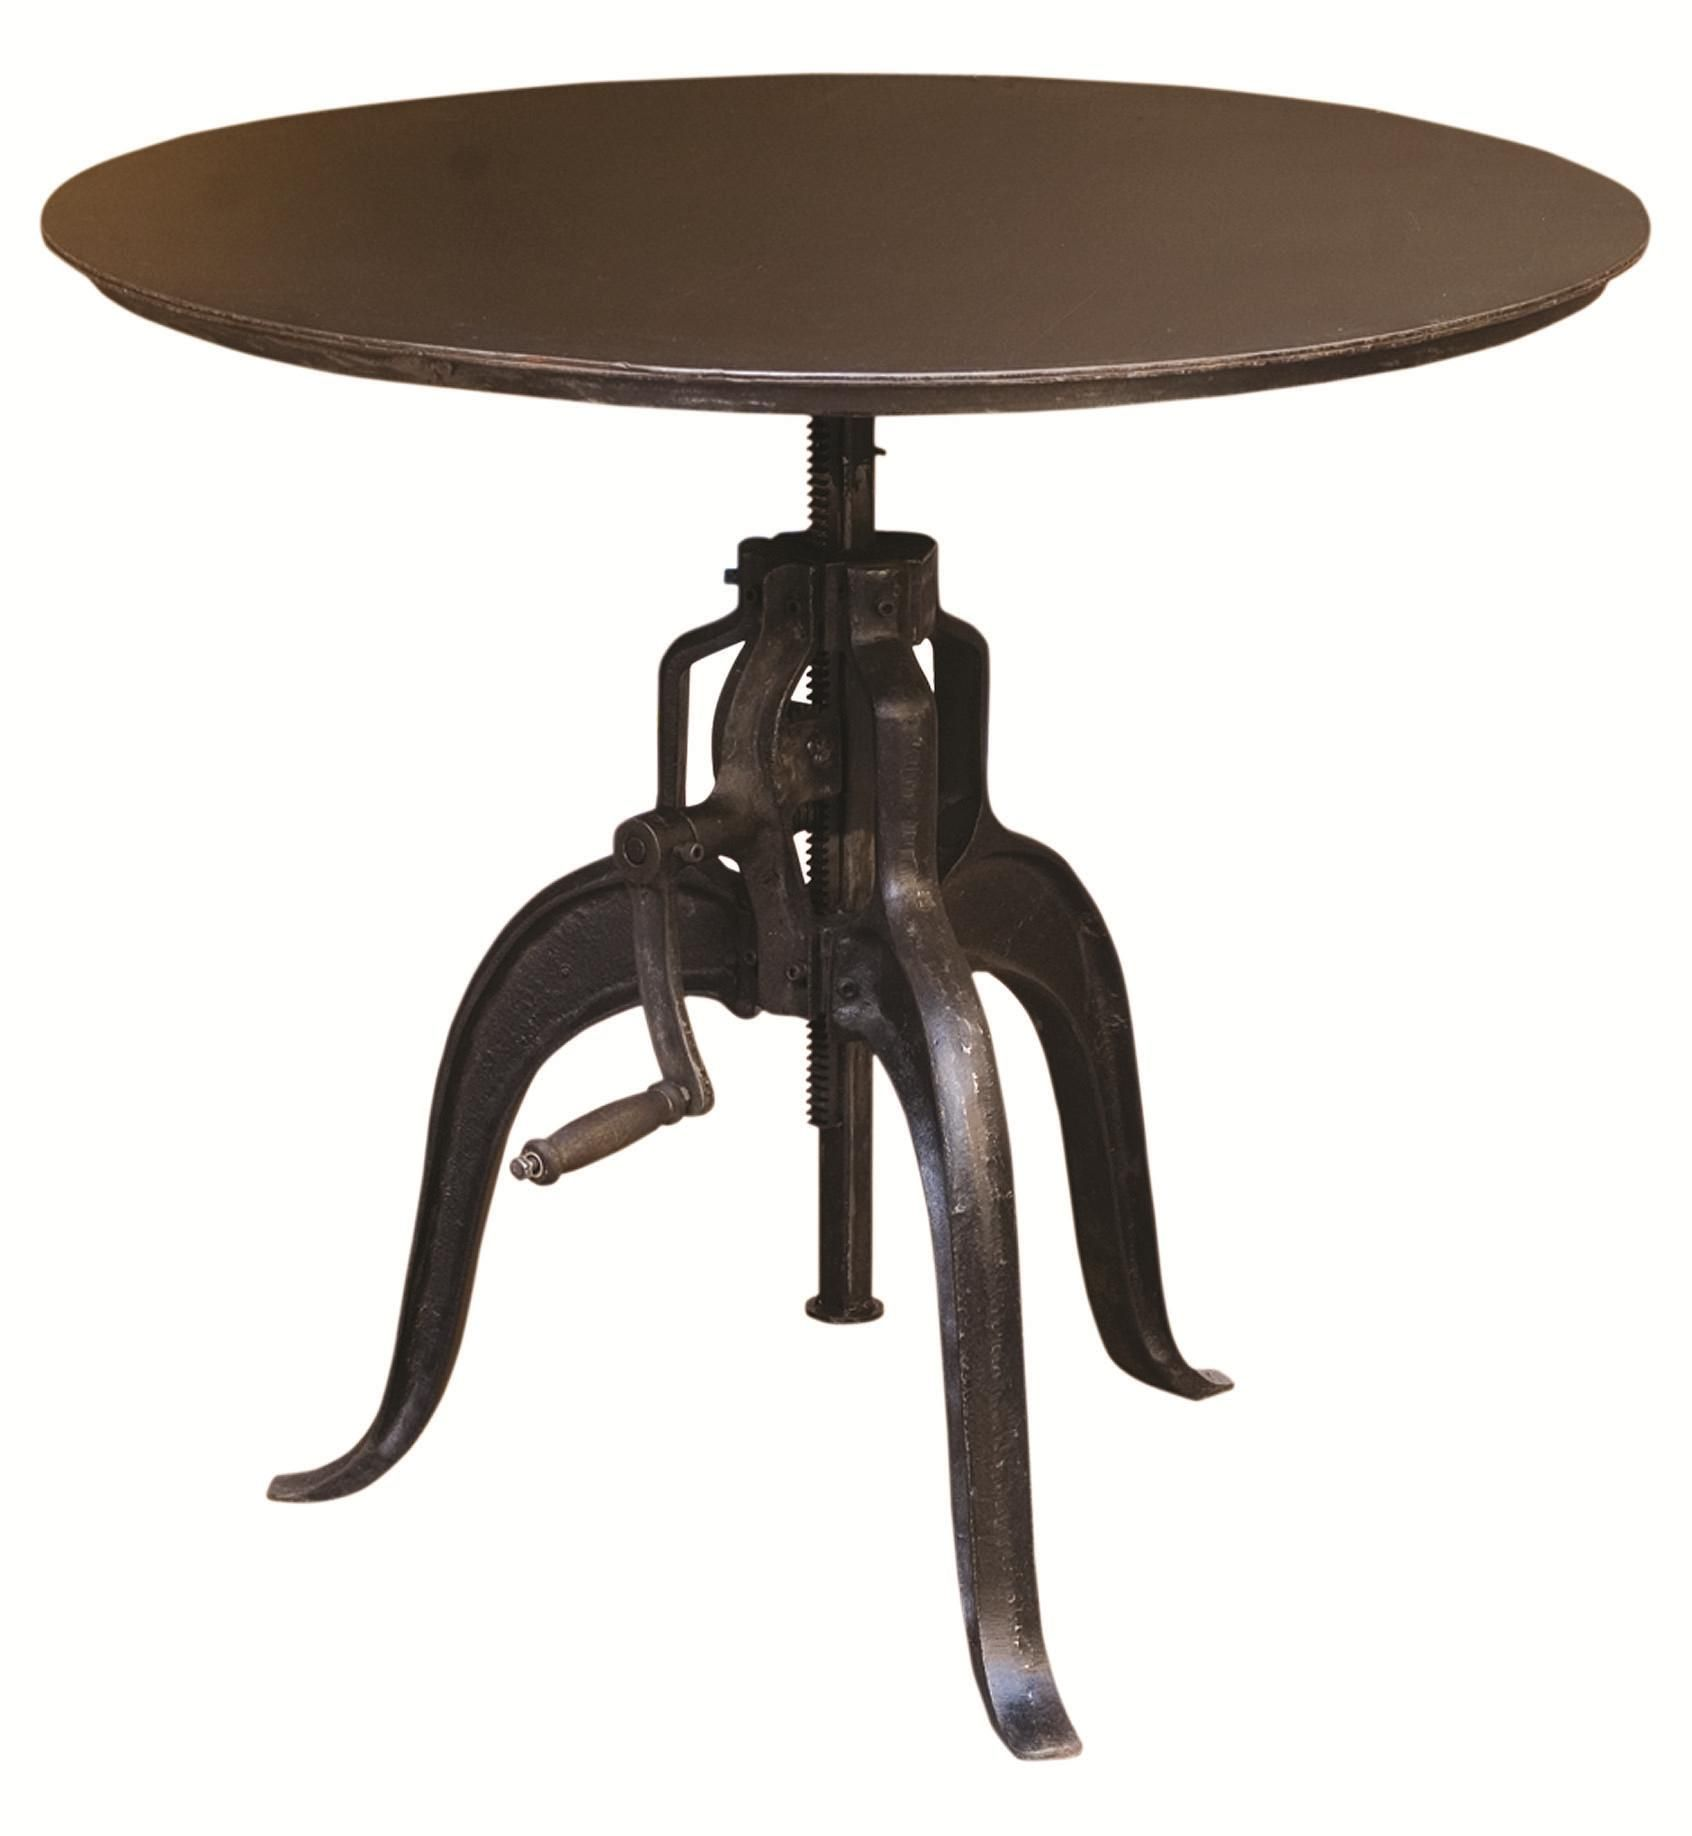 Industrial Style Round Dining Table Rockwell Round Adjustable Industrial Style Table By Four Hands